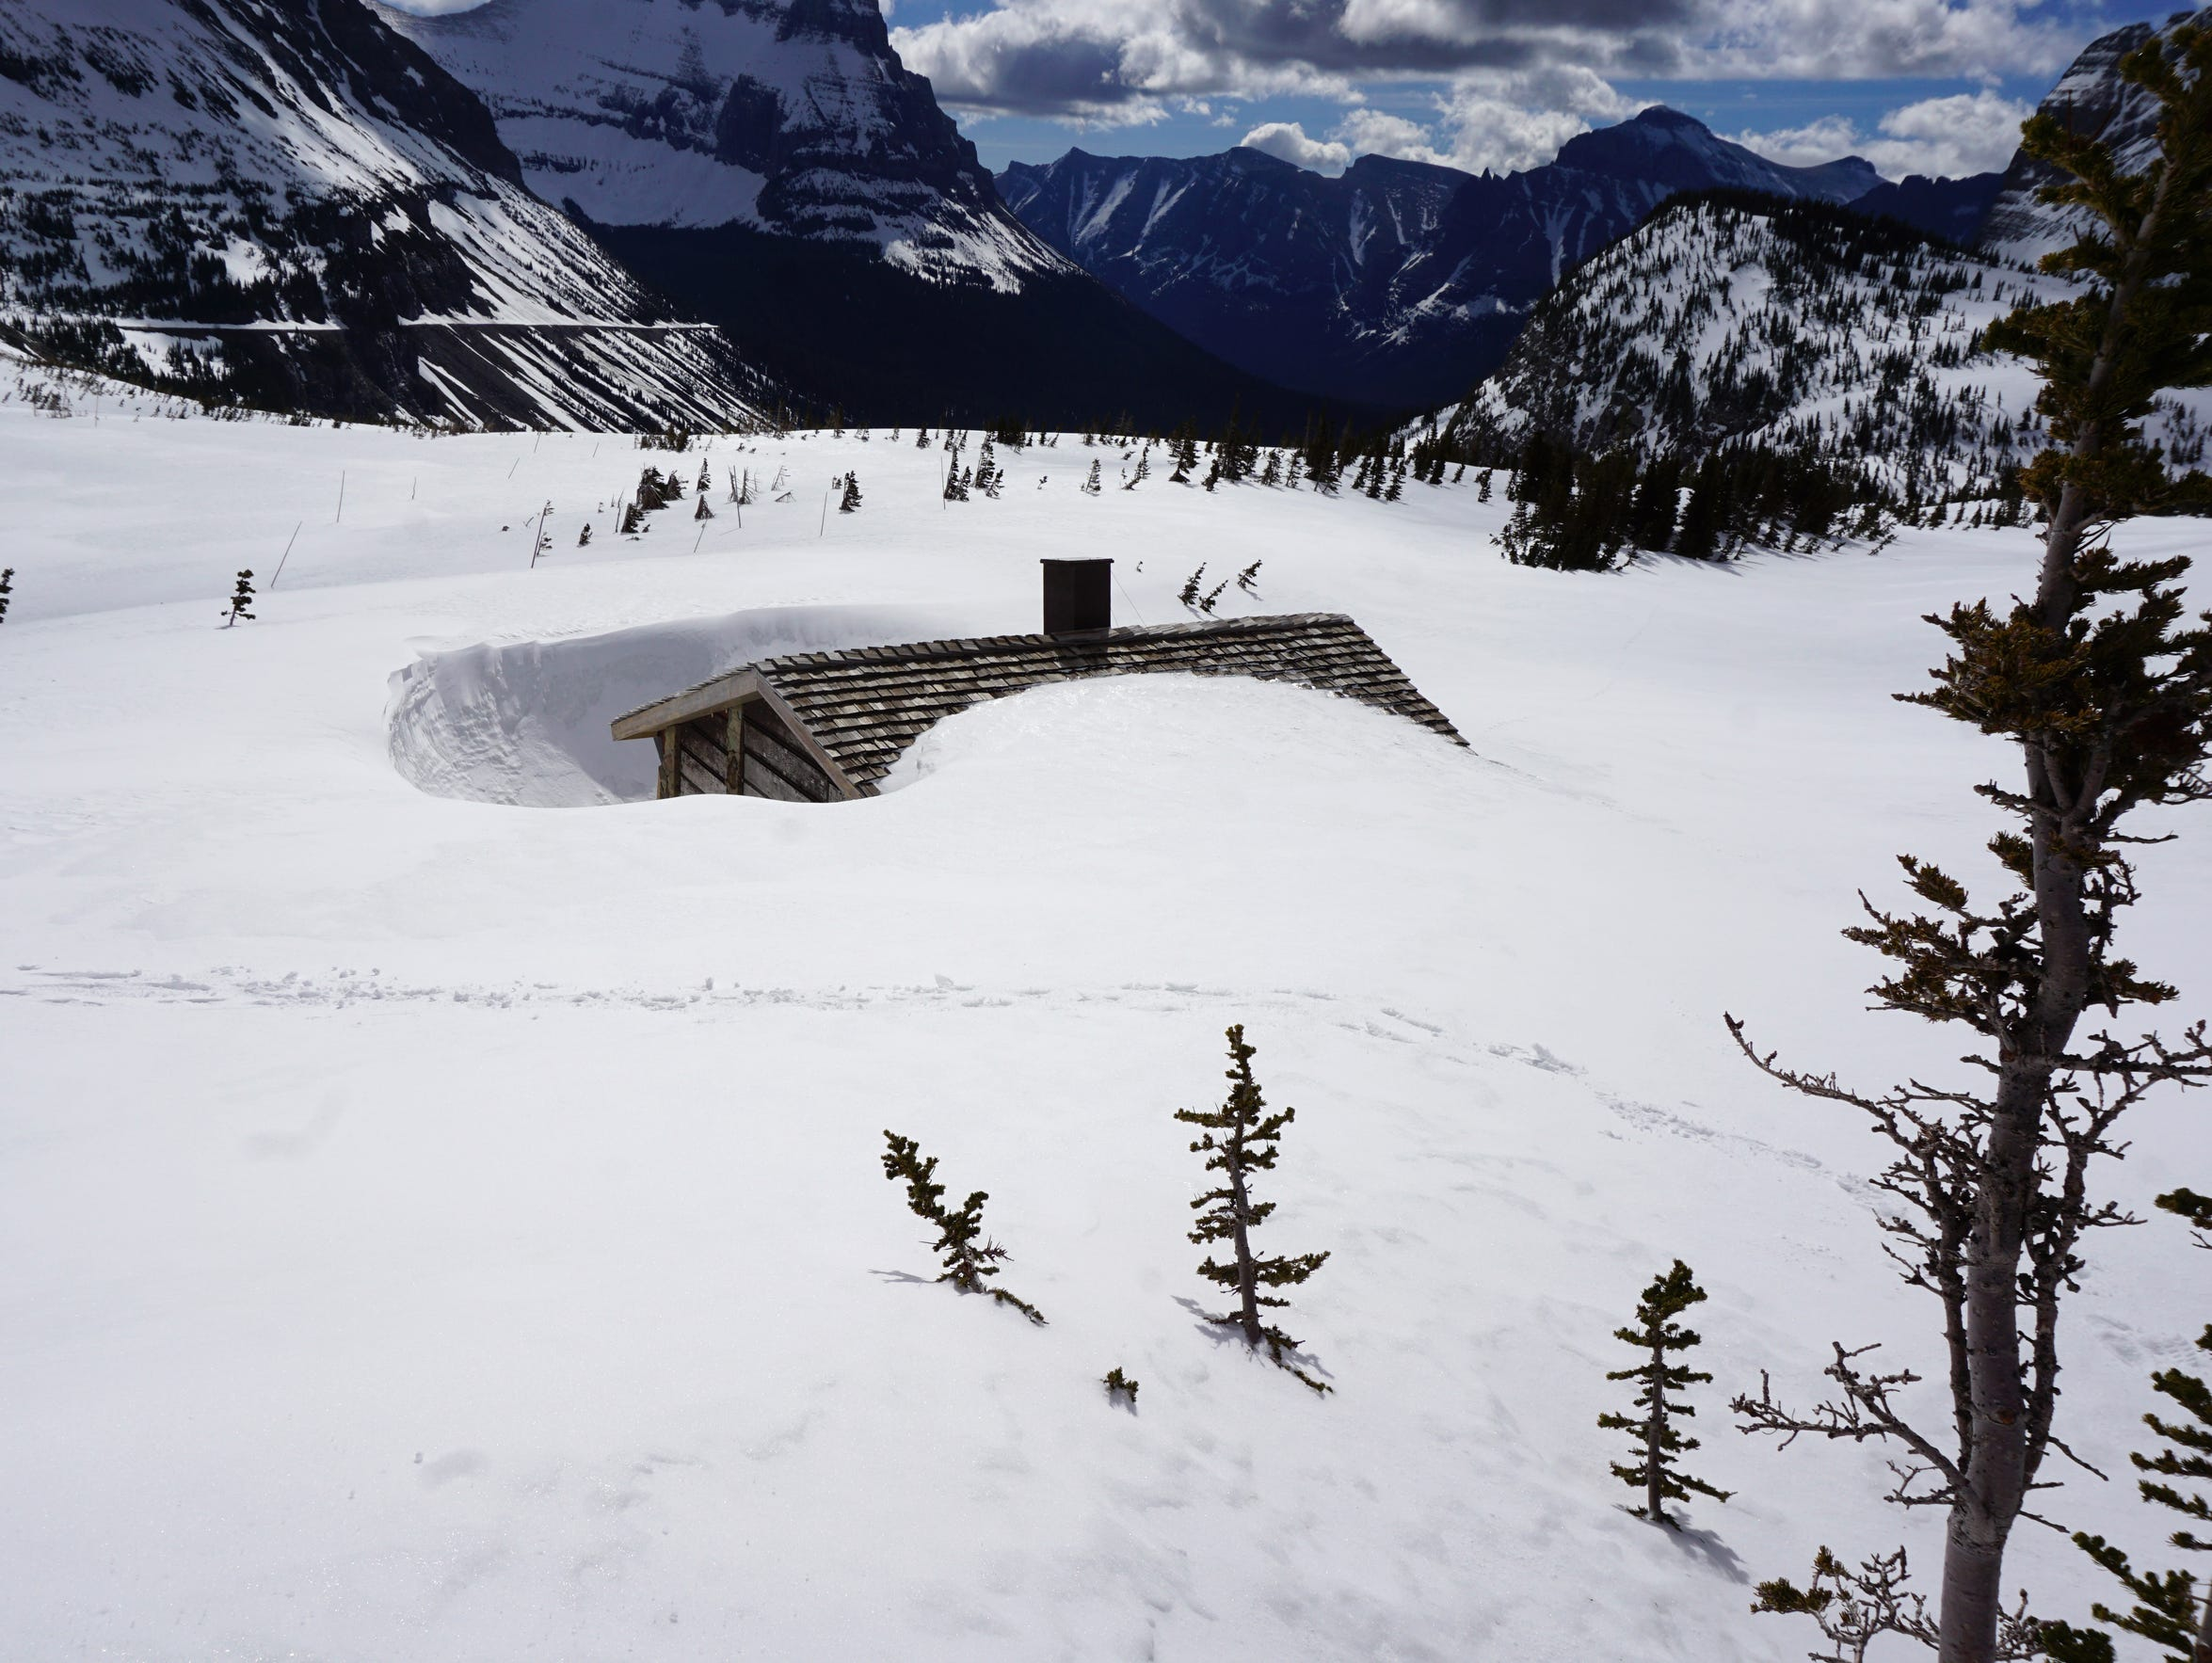 Logan's Pass Visitor Center on May 15, 2017.